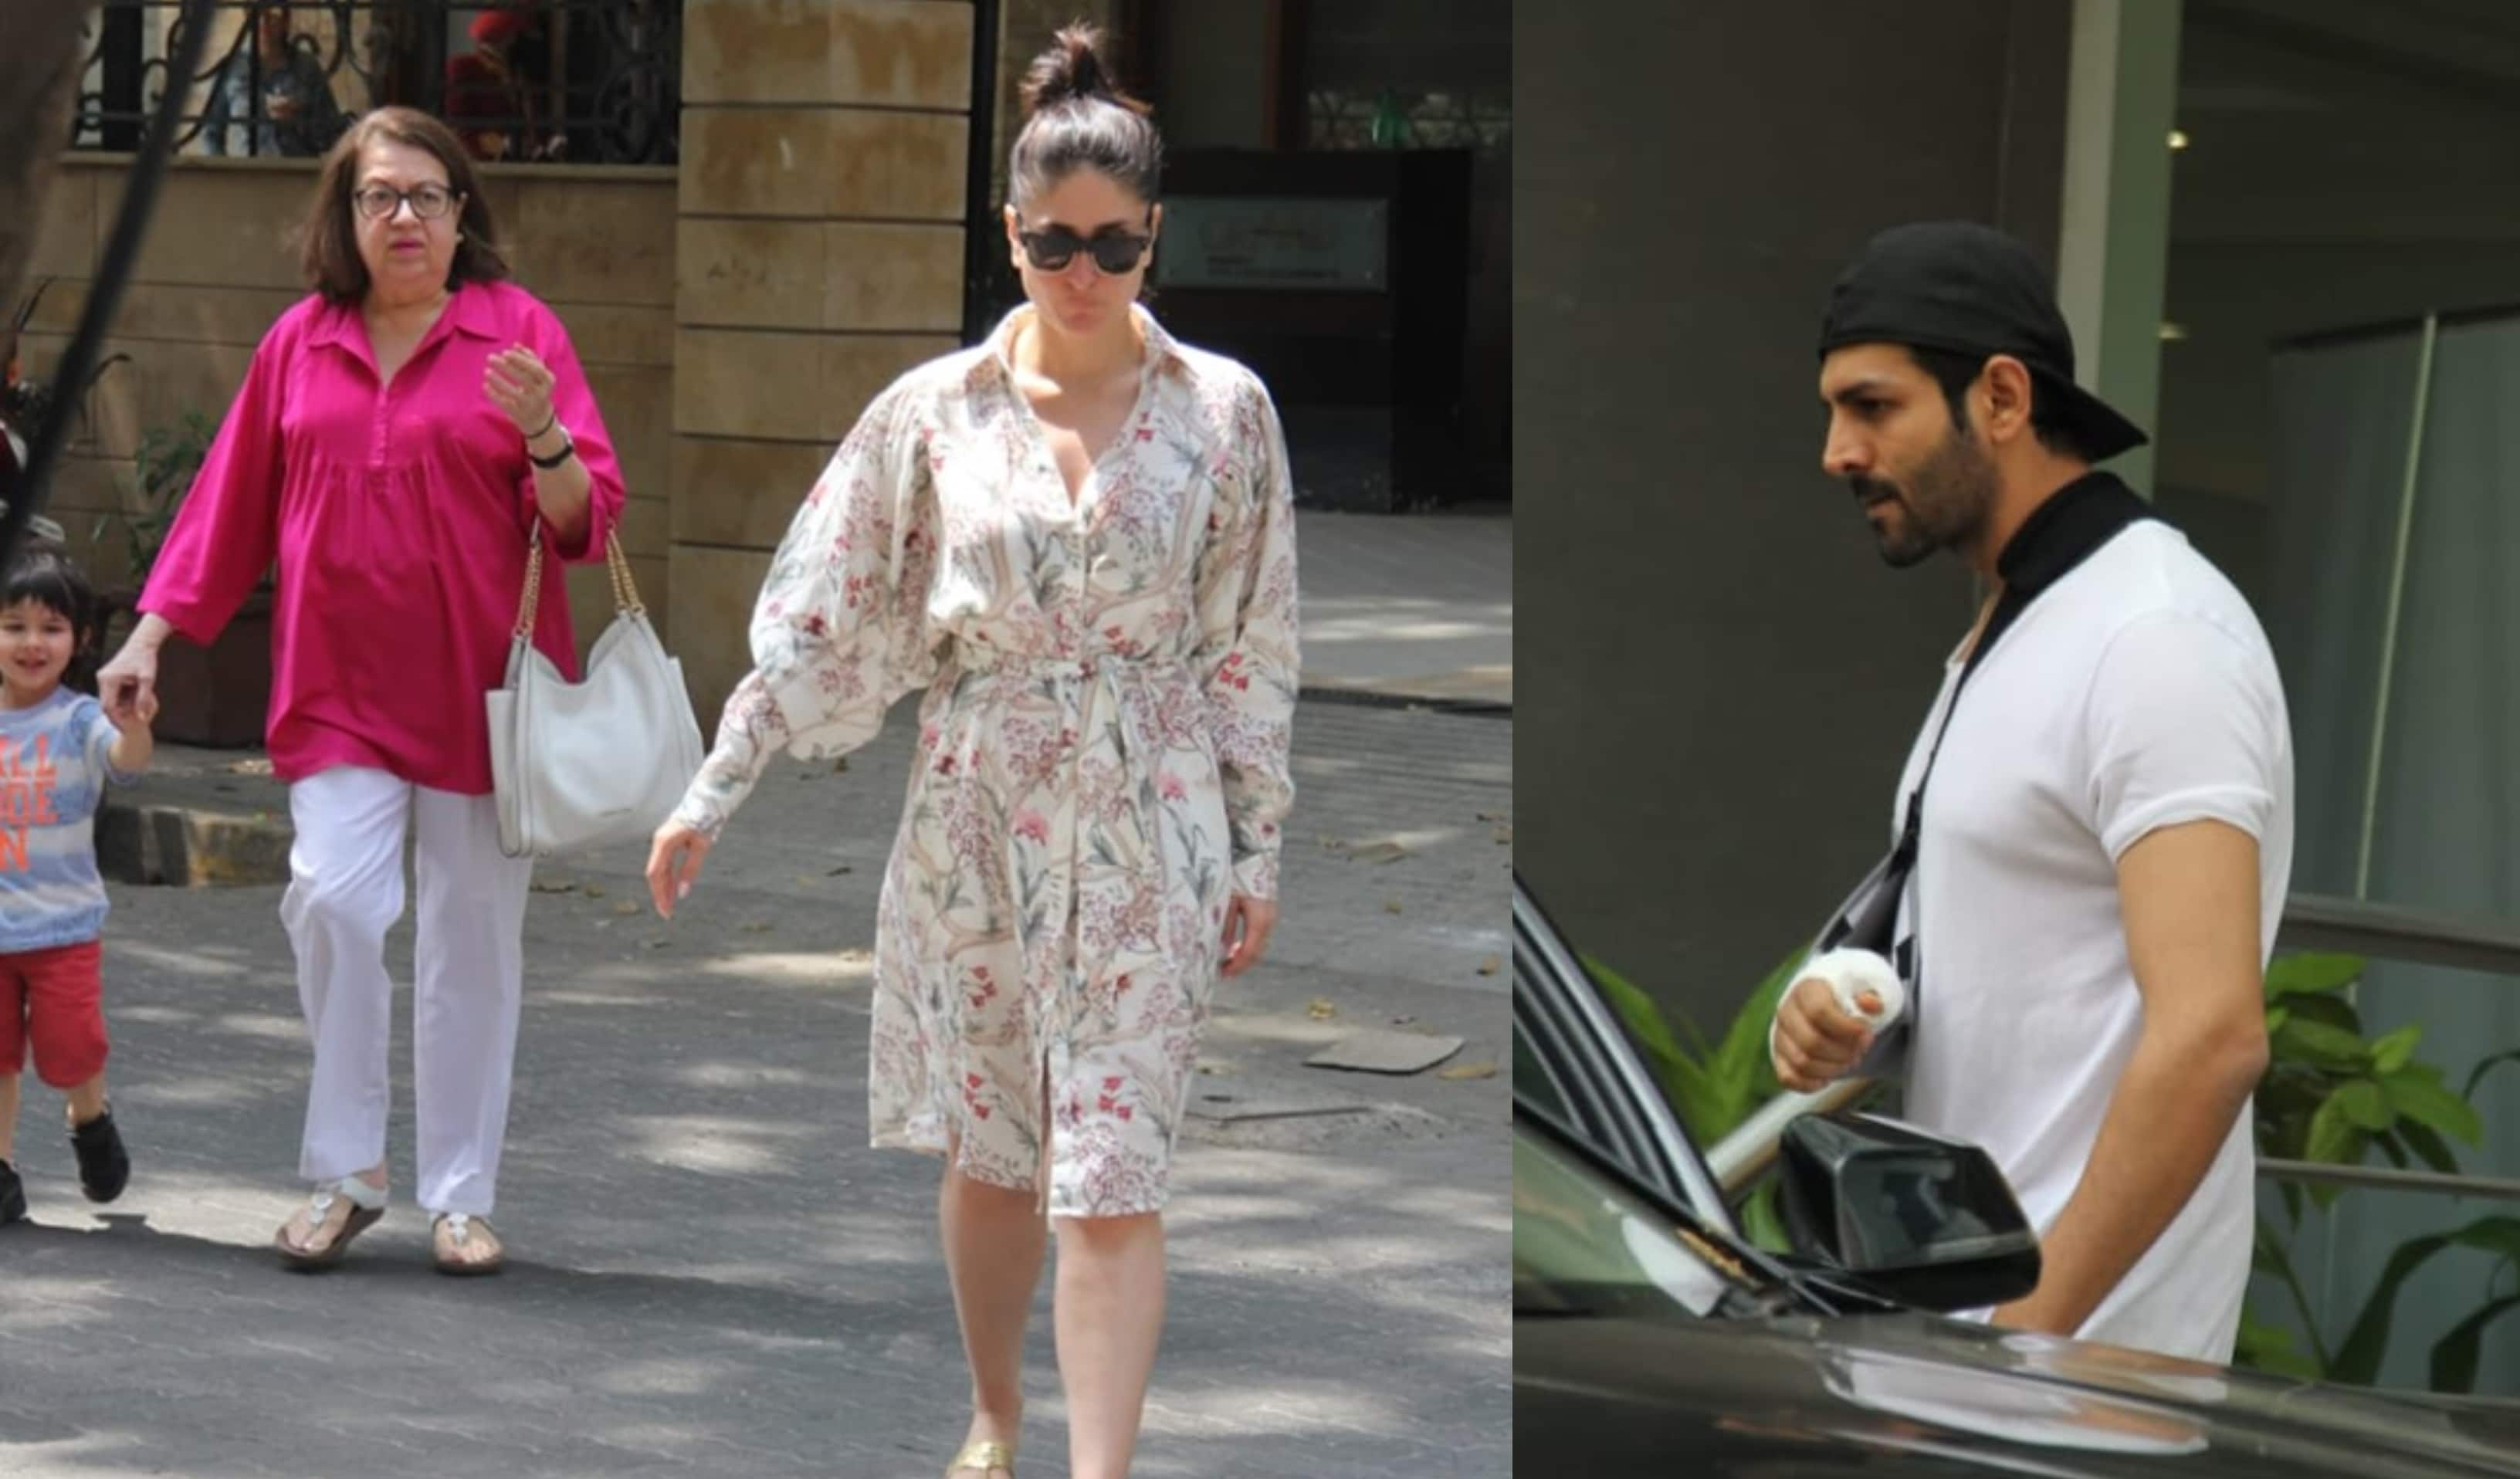 Spotted: Kartik Aaryan Attends IIFA Event Post Surgery, Kareena Kapoor Steps Out With Taimur And Mom Babita